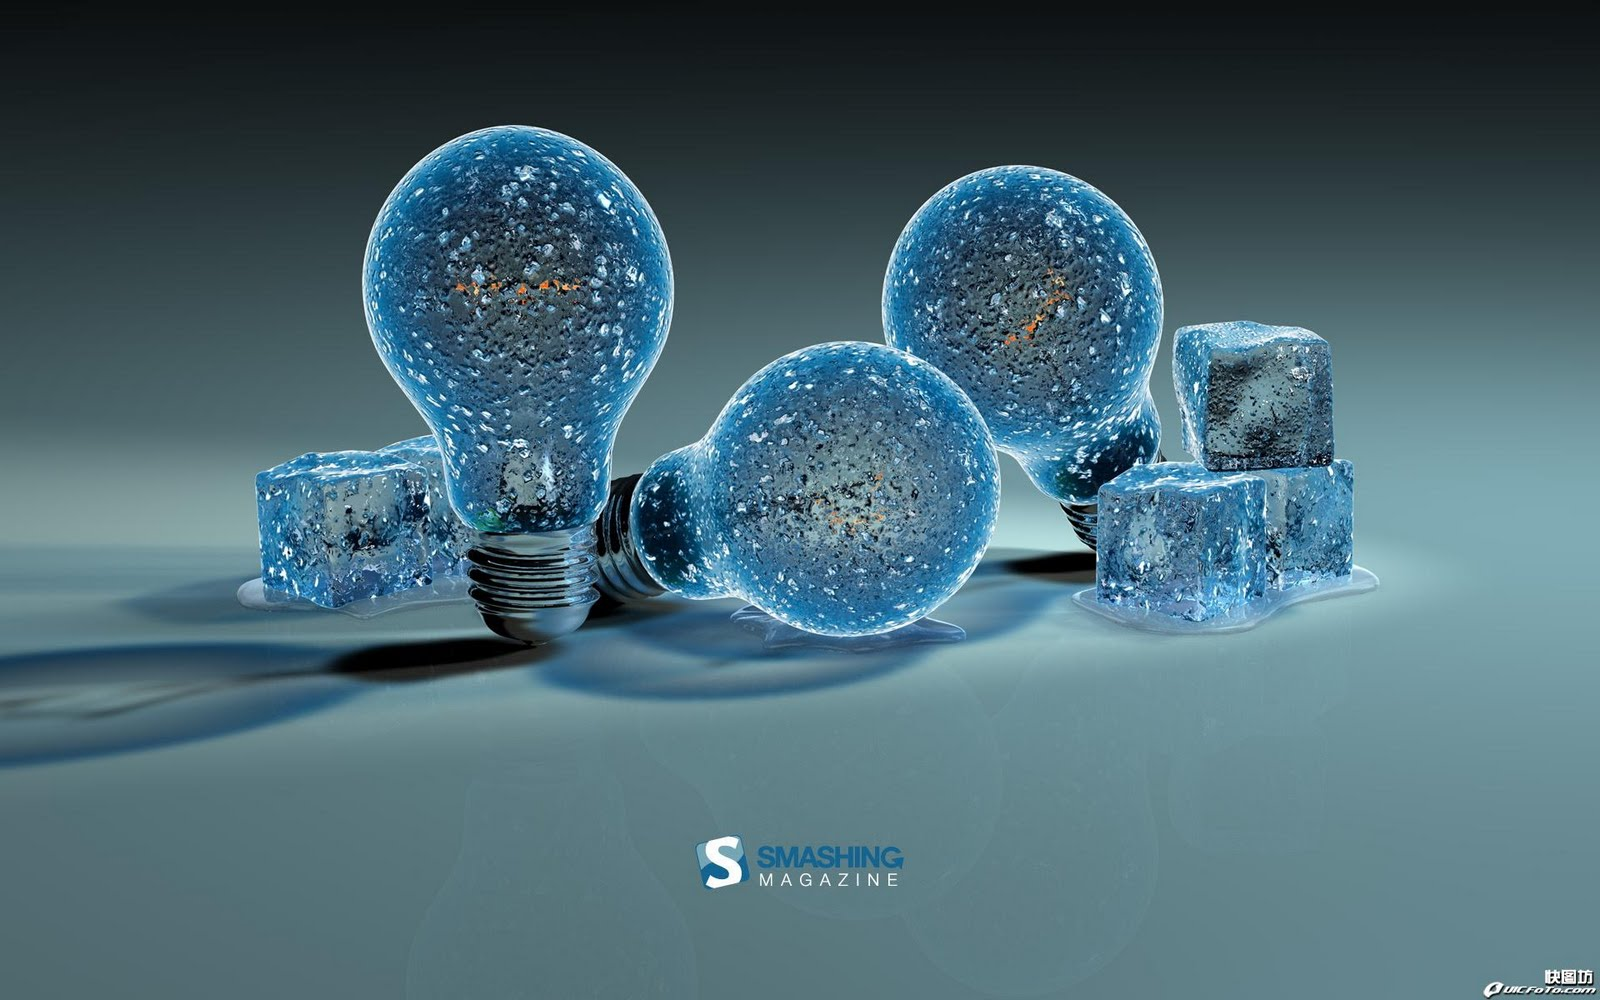 cool ice wallpaper funny amazing images